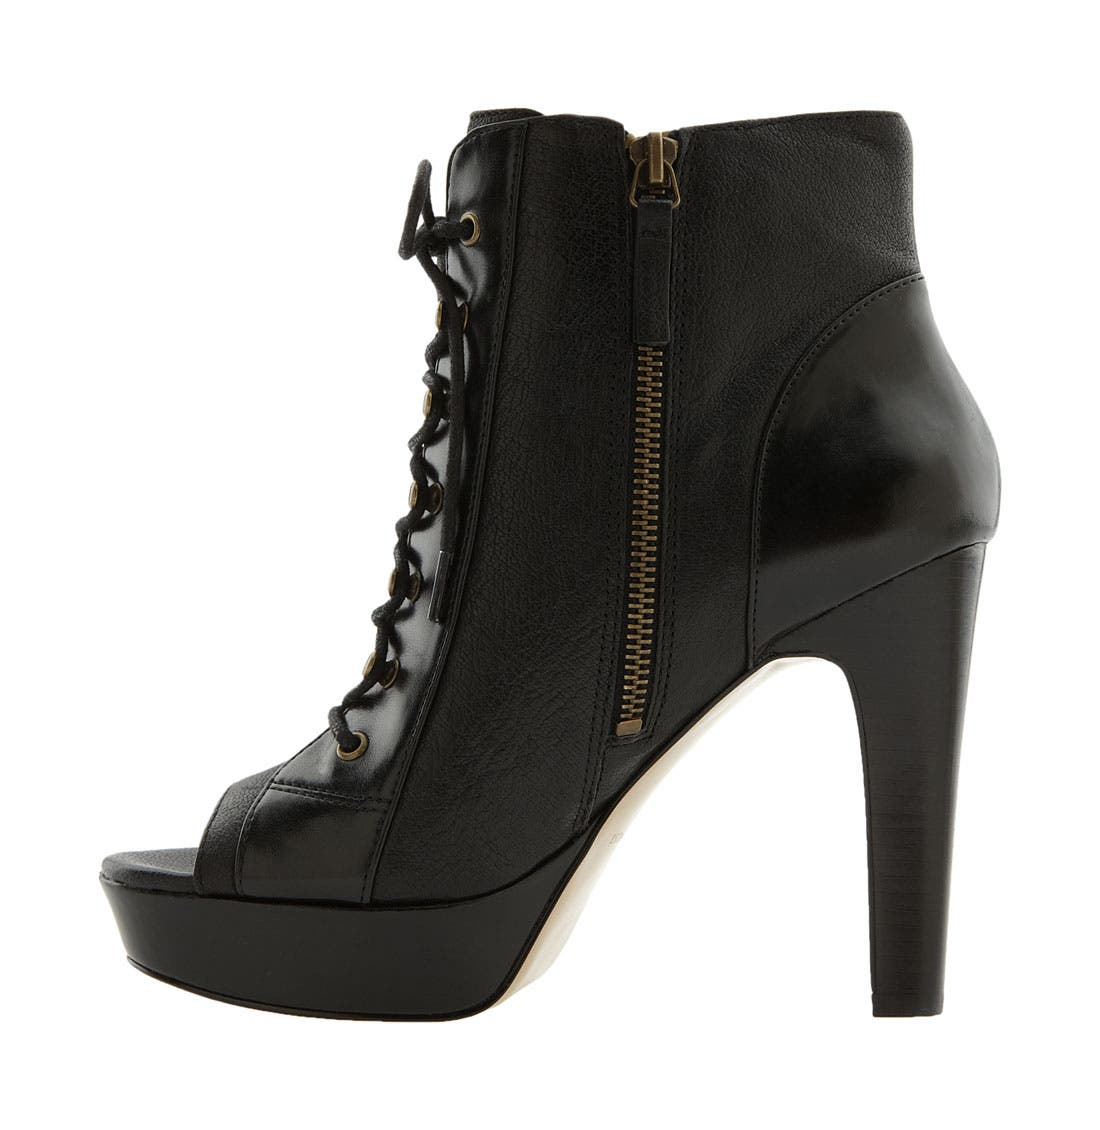 NINE WEST,                             'Buren' Ankle Boot,                             Alternate thumbnail 4, color,                             001